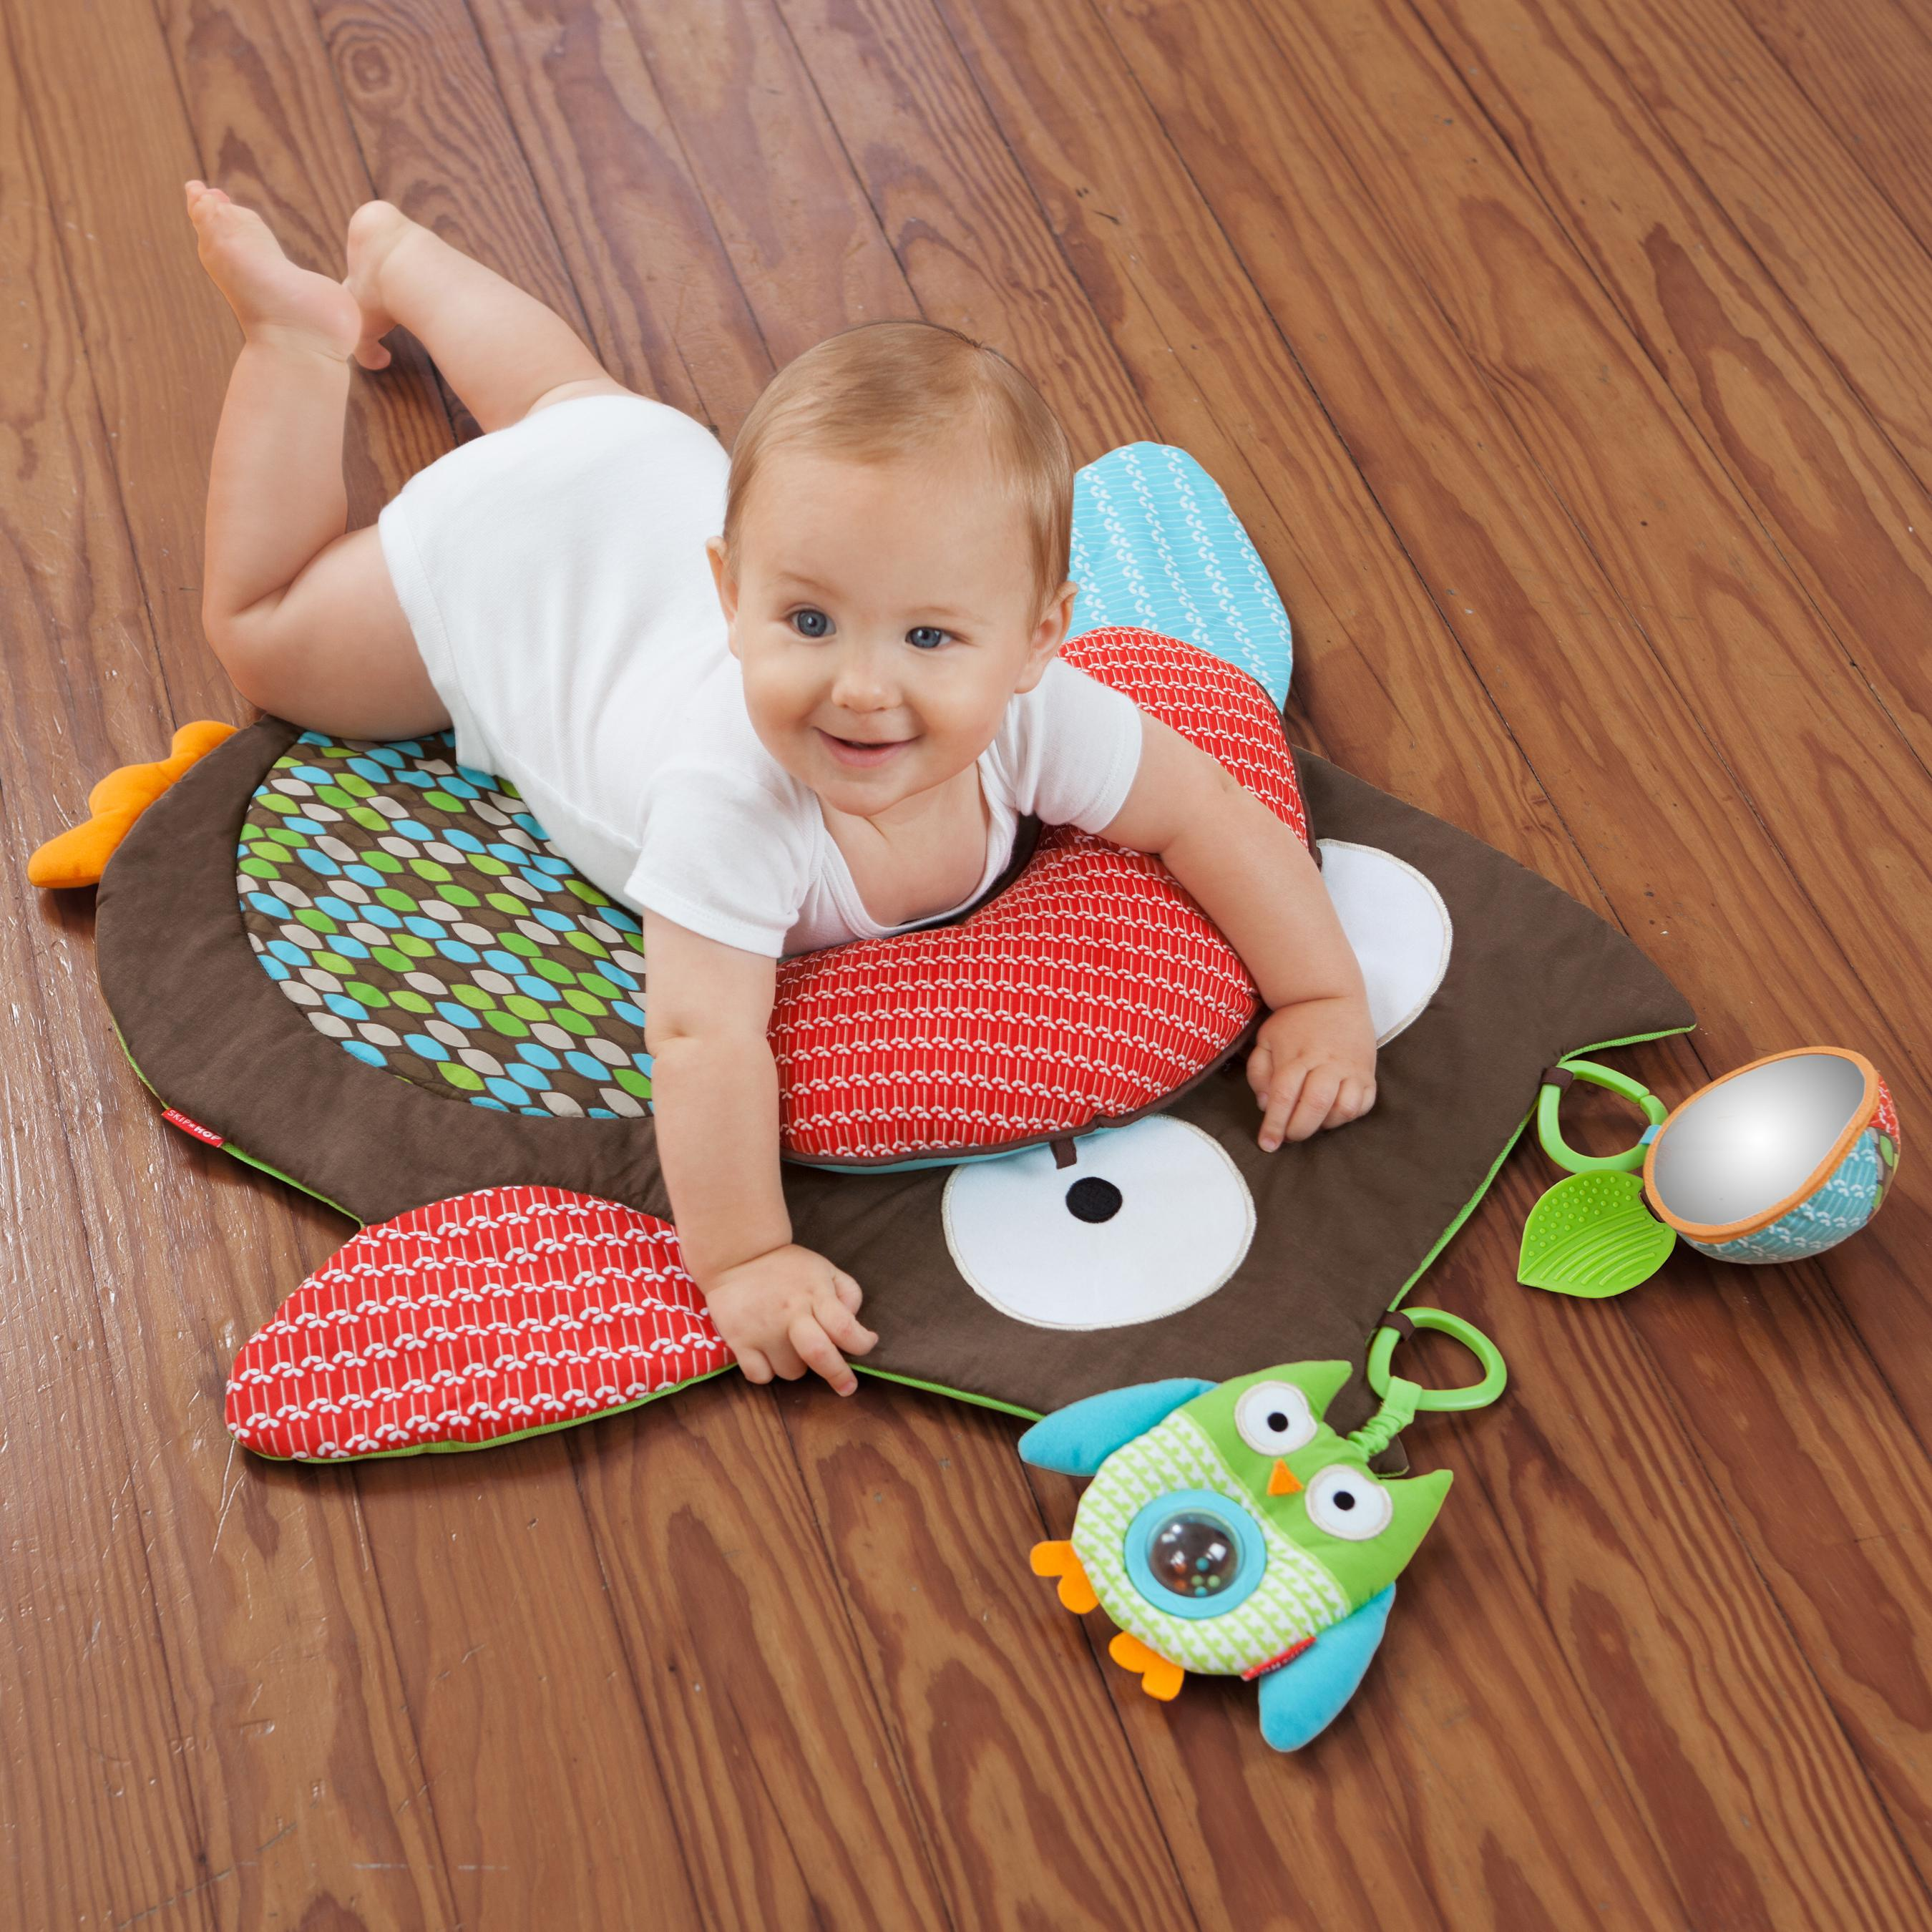 From The Manufacturer. Skip Hop Tummy Time Mat ...